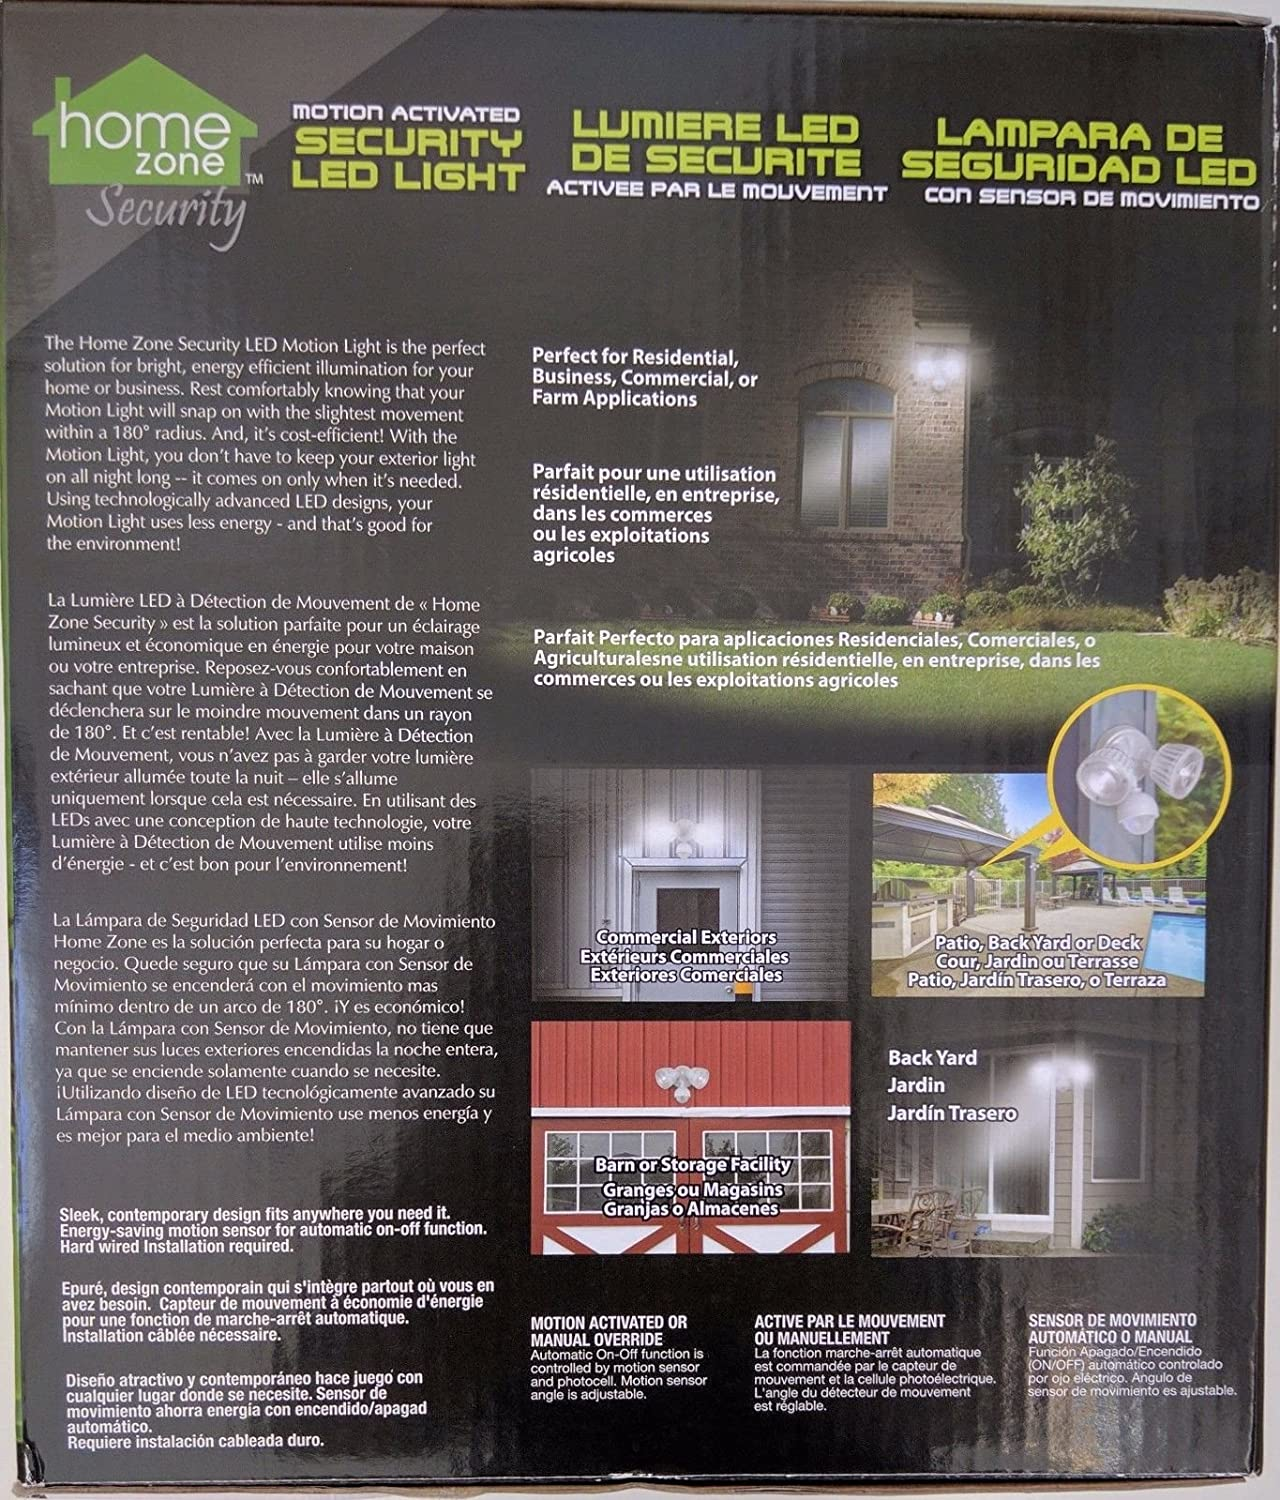 Home Zone AEC-34QA2-AC16W Mark 2 LED Flood Security Light with Motion Sensor, Outdoor Weather Proof, 2500 Lumens, 36 Watts, White